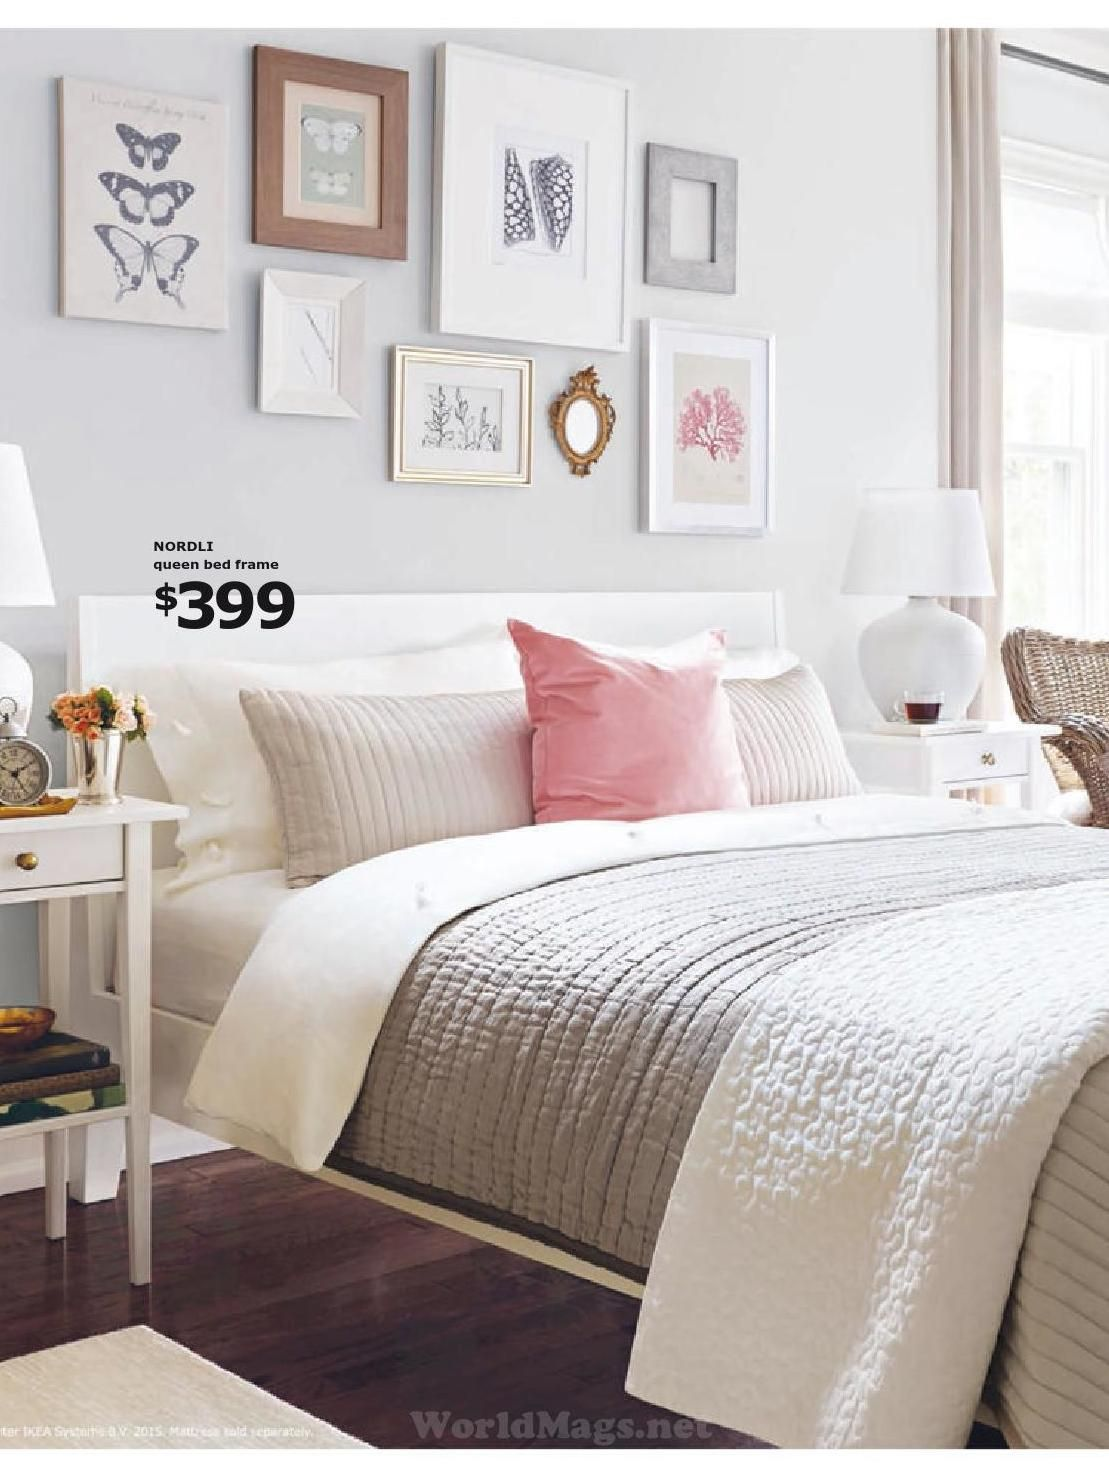 Design Your Room Online Ikea: #ClippedOnIssuu From July 2015